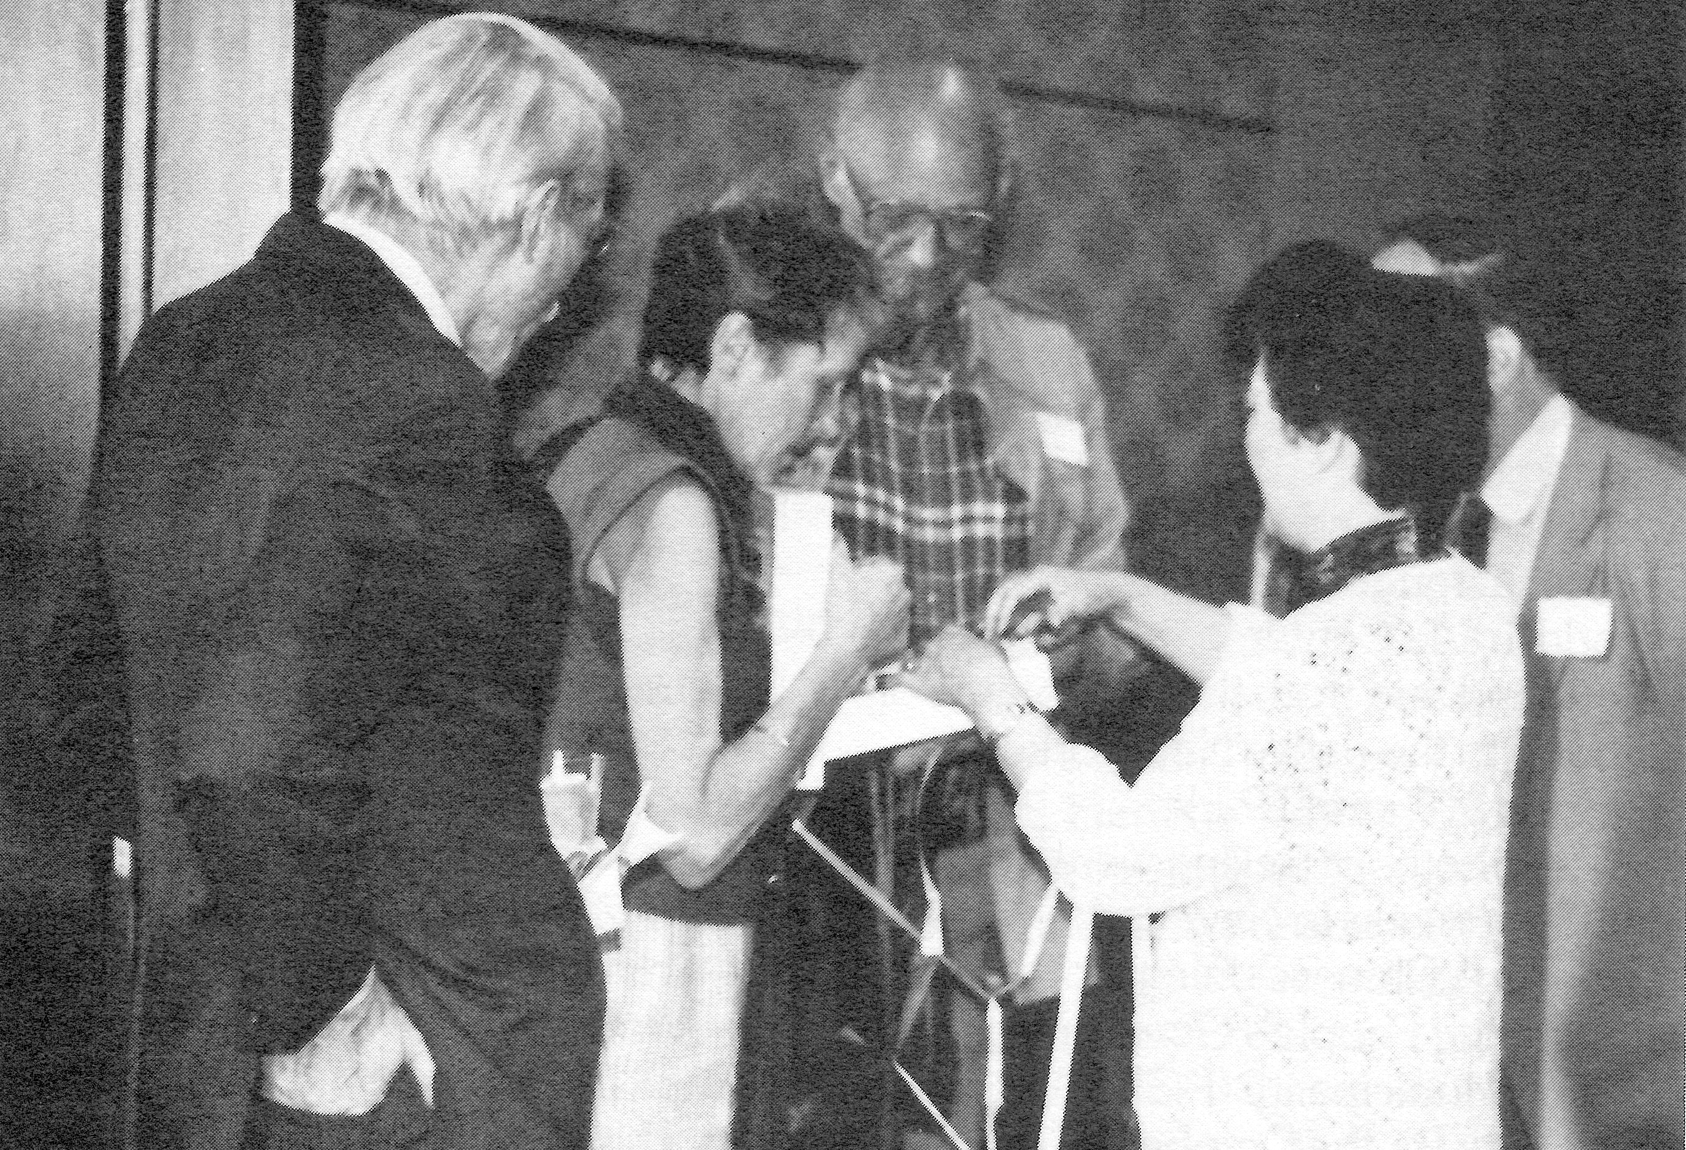 Reunion at The Asia Society (left to right): Harrison E. Salisbury, Inge Morath, Arthur Miller, Zhu Lin, and interpreter Jay Sailey (partial view)